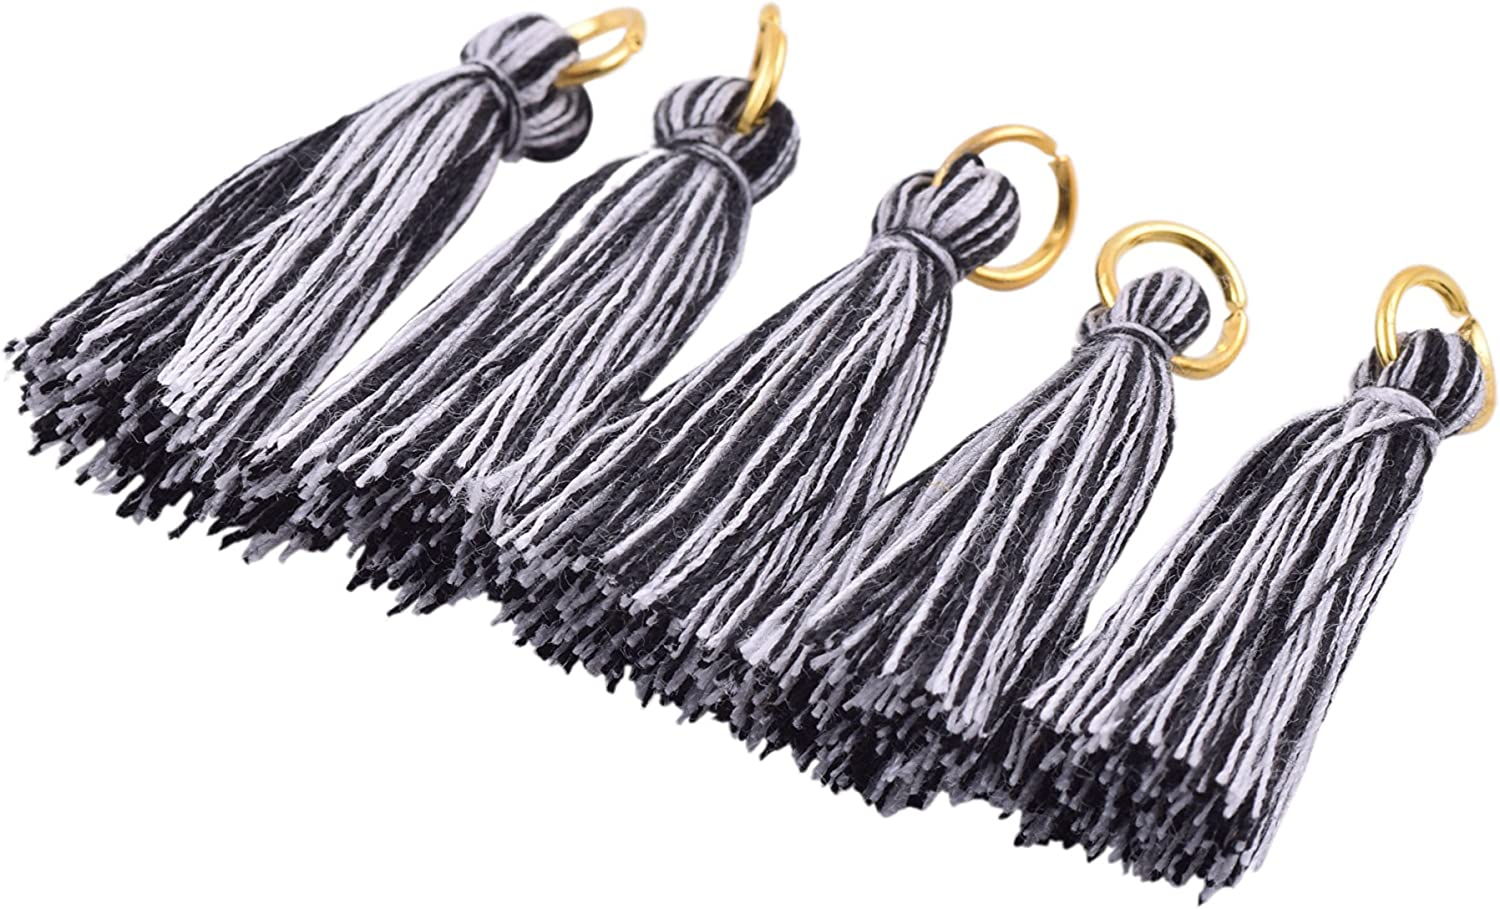 Aqua 3.5cm Soft Handmade Silky Tiny Craft Tassels with Golden Jump Ring for DIY Projects KONMAY 100PCS 1.4